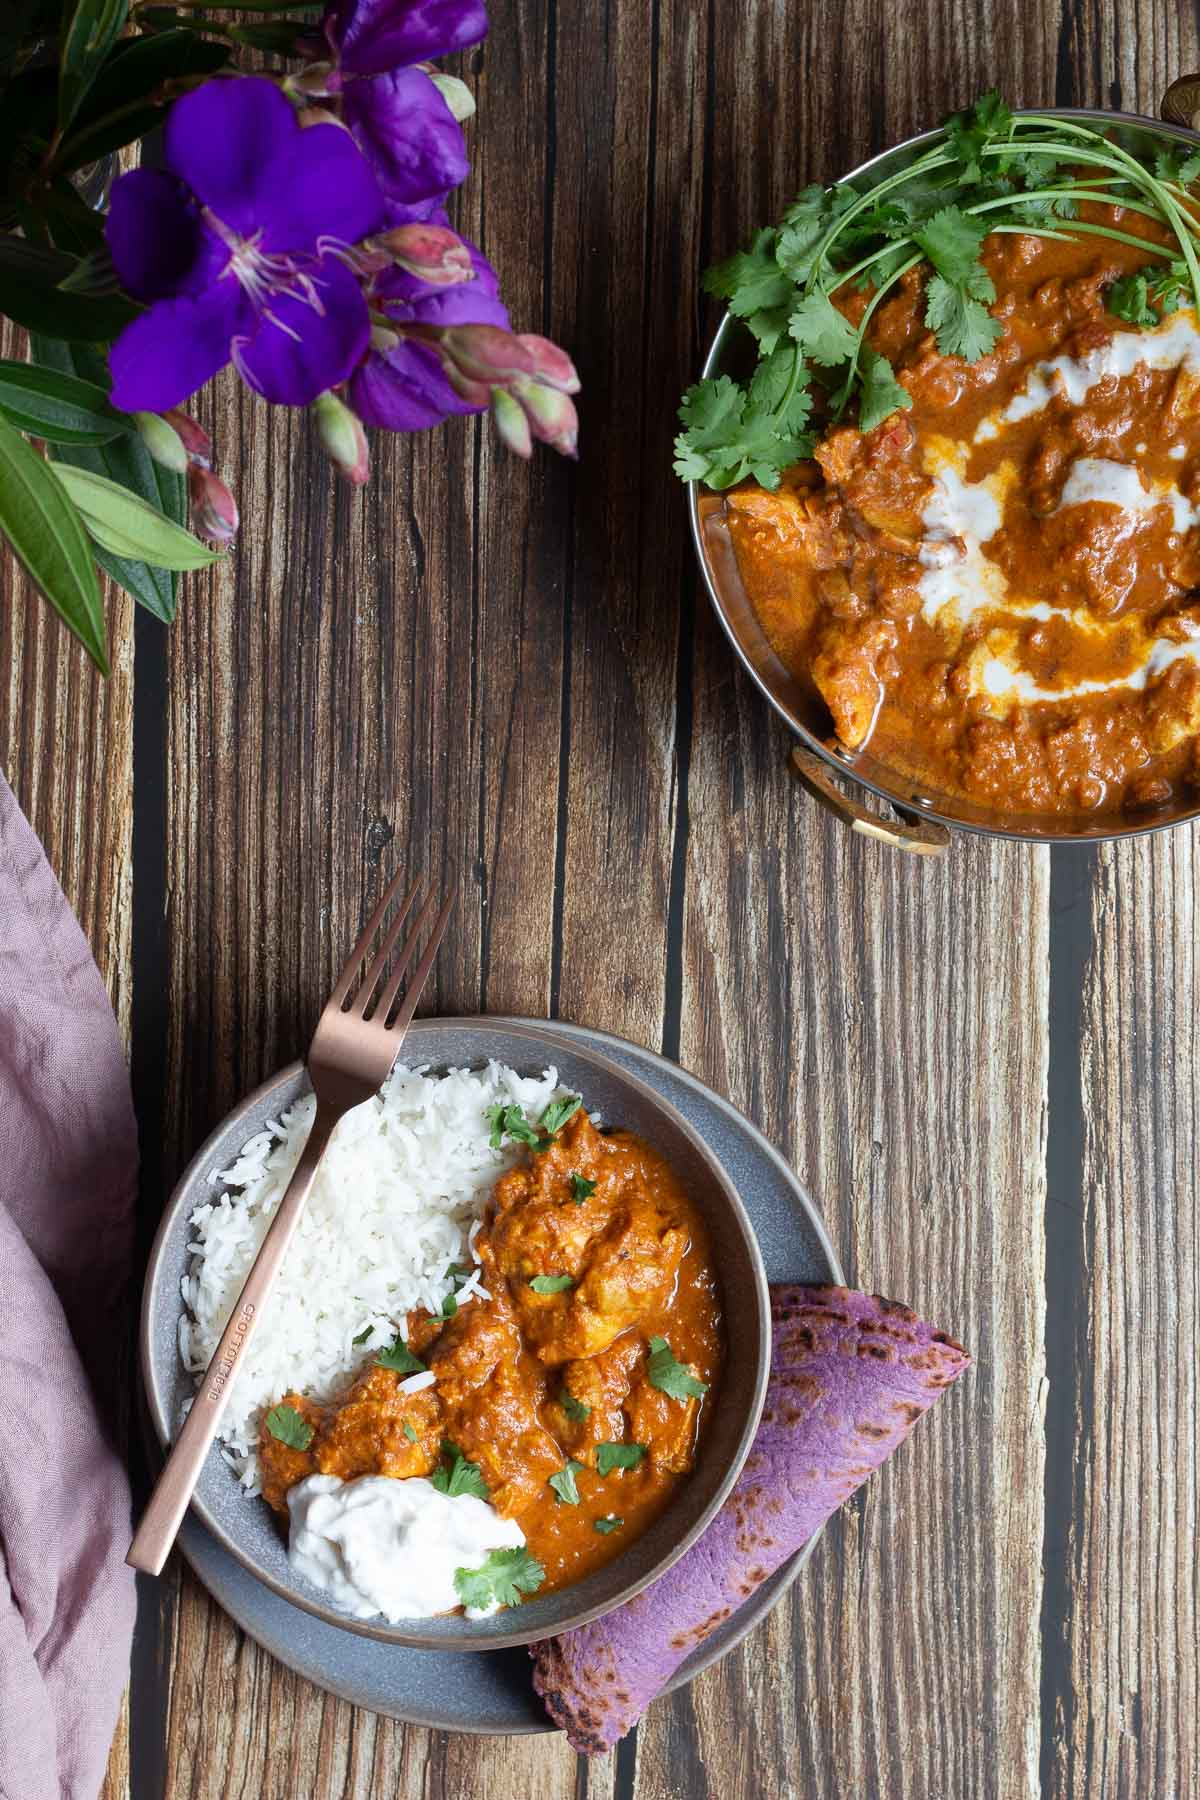 Dairy Free Butter Chicken served with purple flatbread and fluffy basmati rice